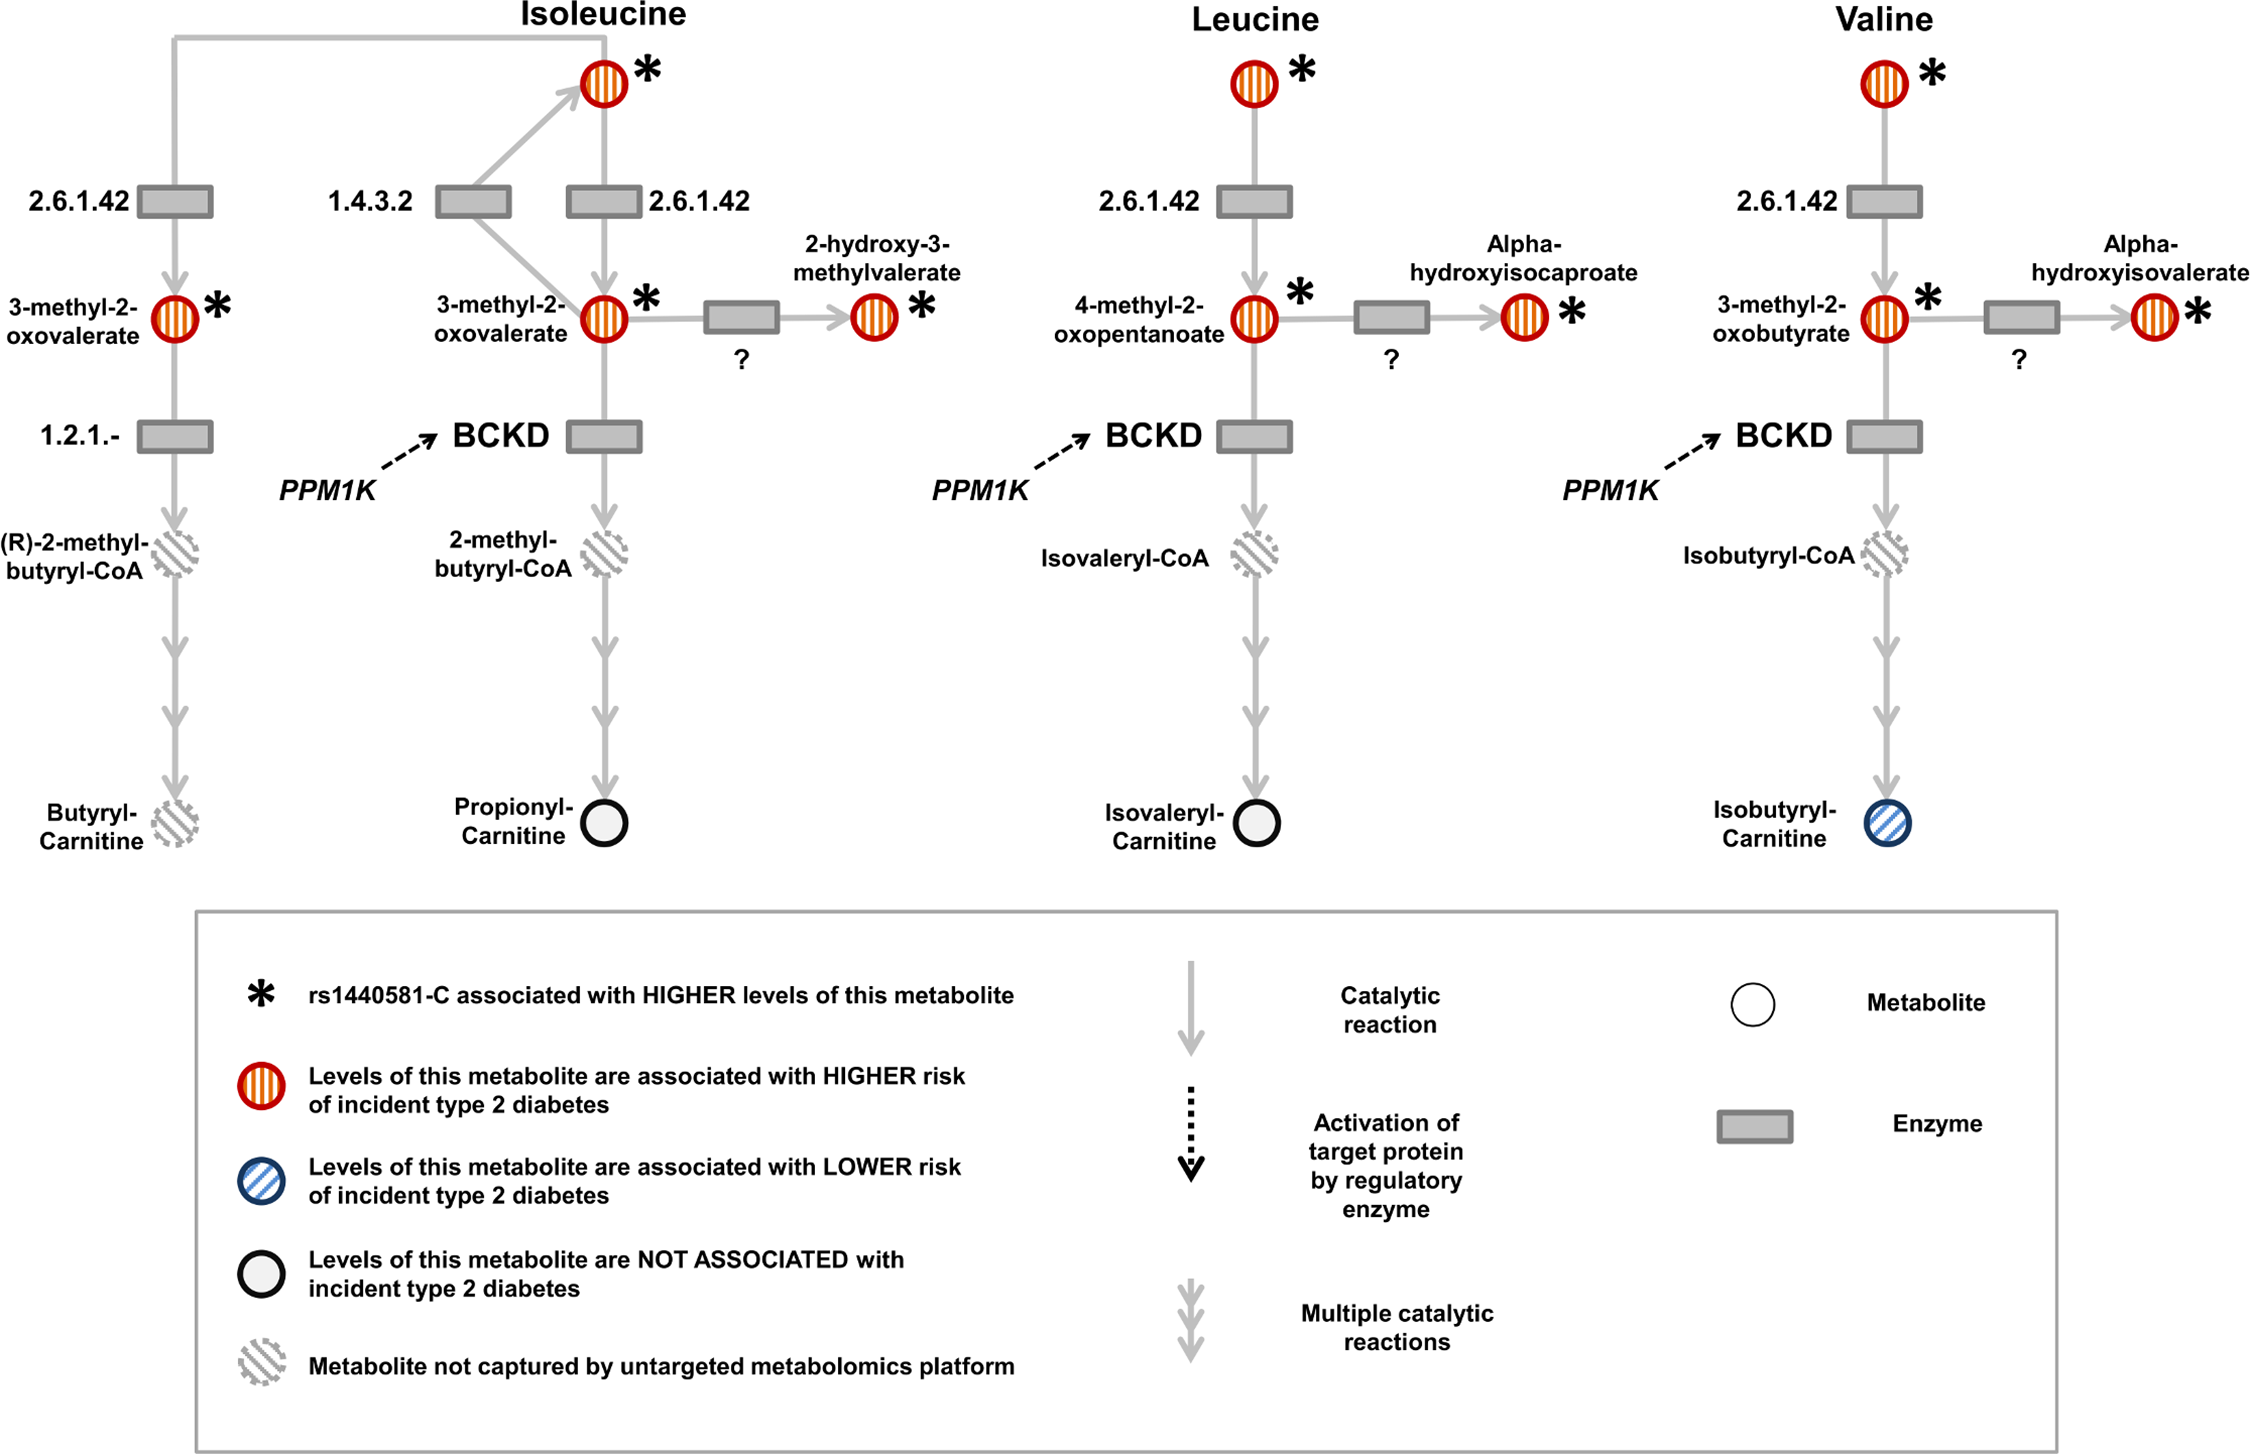 Schematic representation of the branched-chain amino acid pathway and associations with type 2 diabetes.